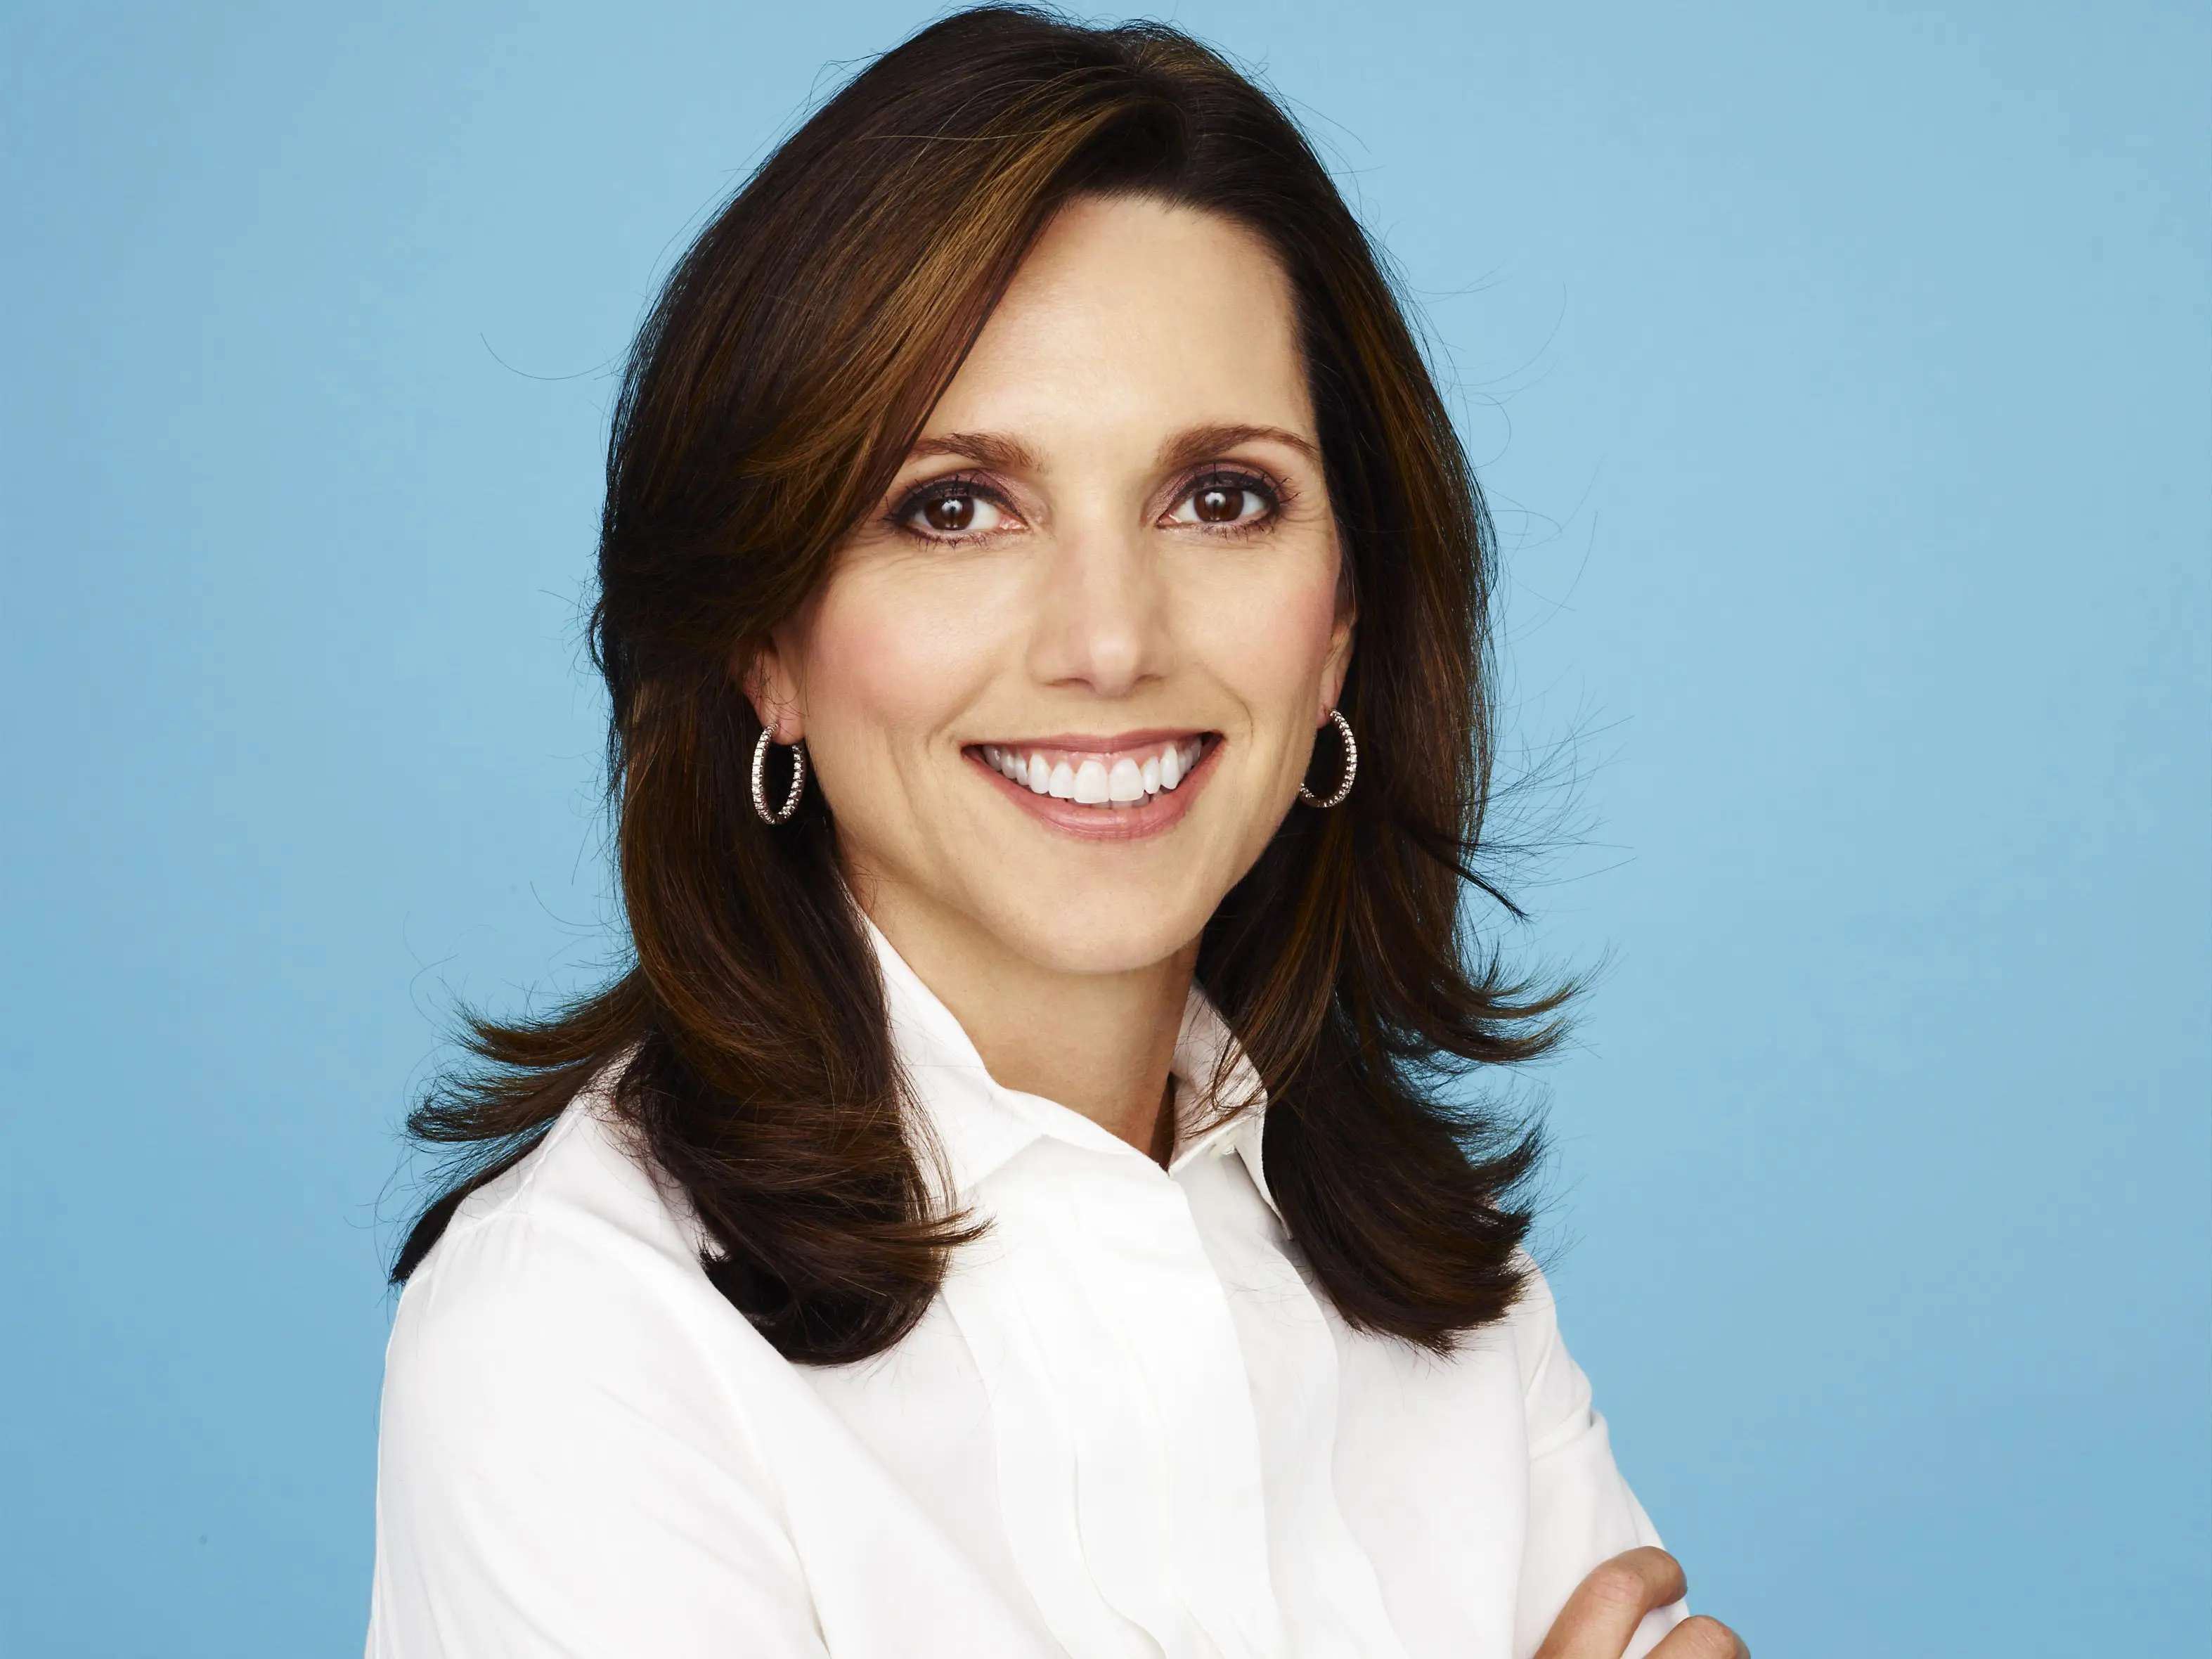 Beth Comstock, CMO at GE